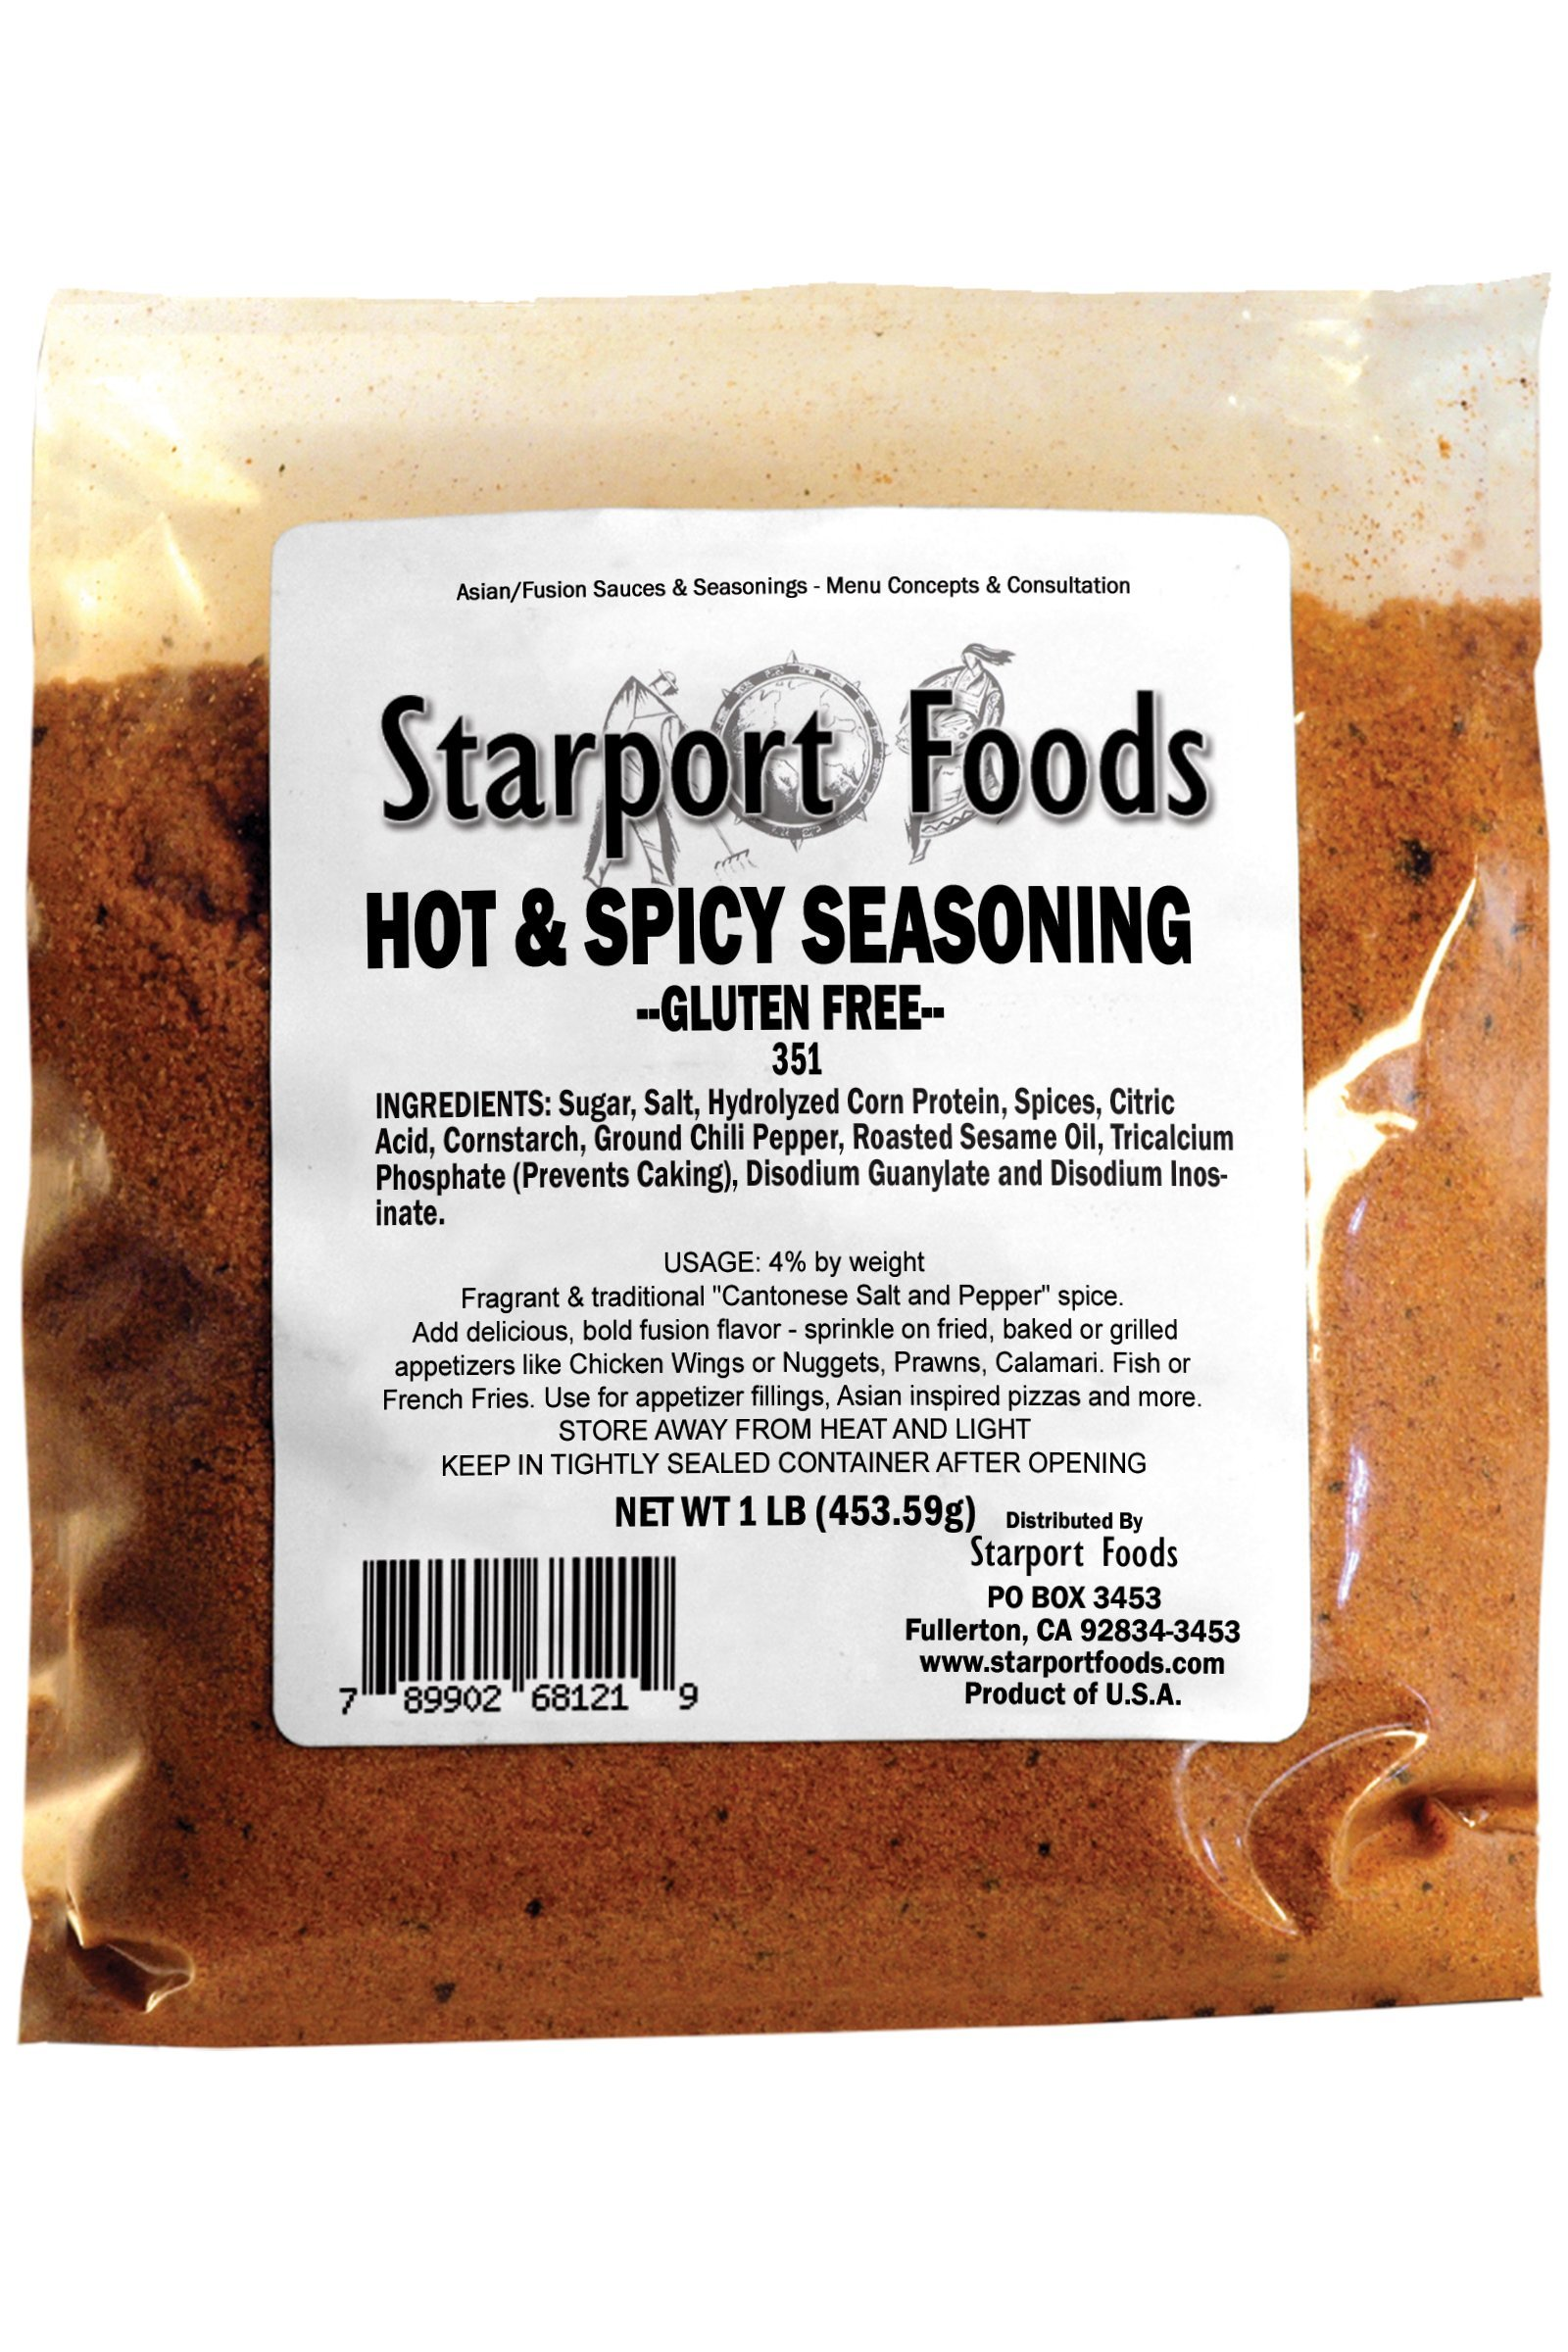 Starport Foods Hot and Spicy Seasoning - Gluten Free, 2 x 1 lb bag